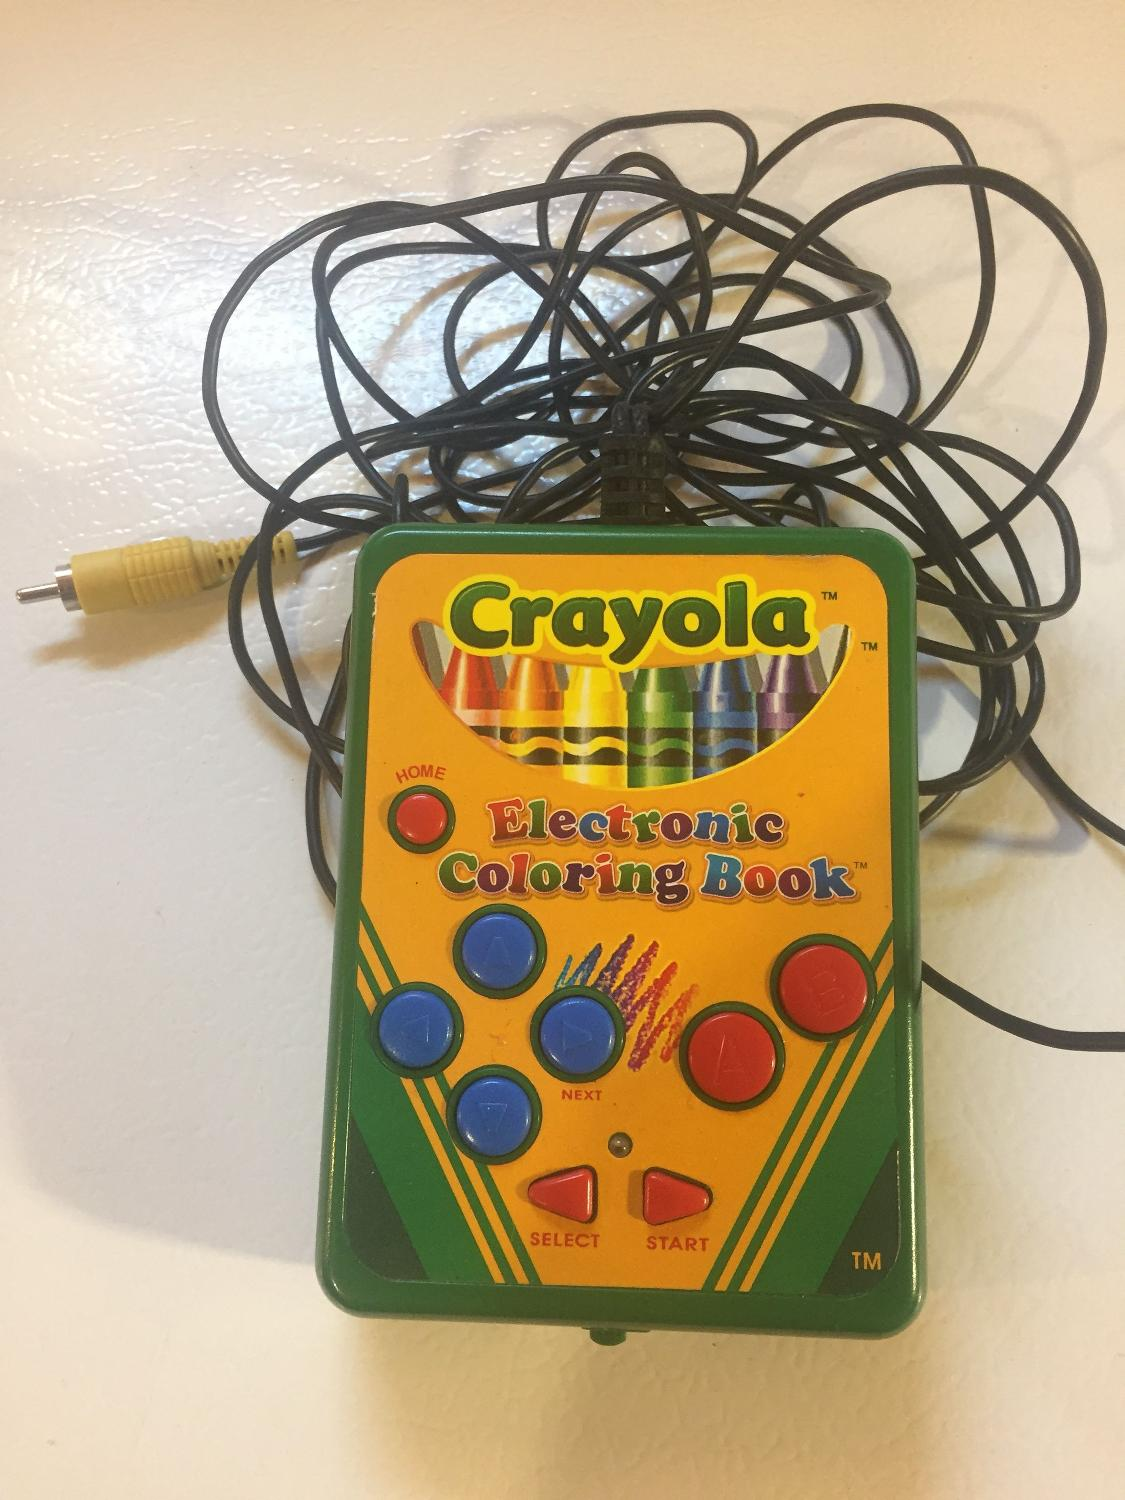 Best Electronic Coloring Book for sale in Winkler, Manitoba for 2018